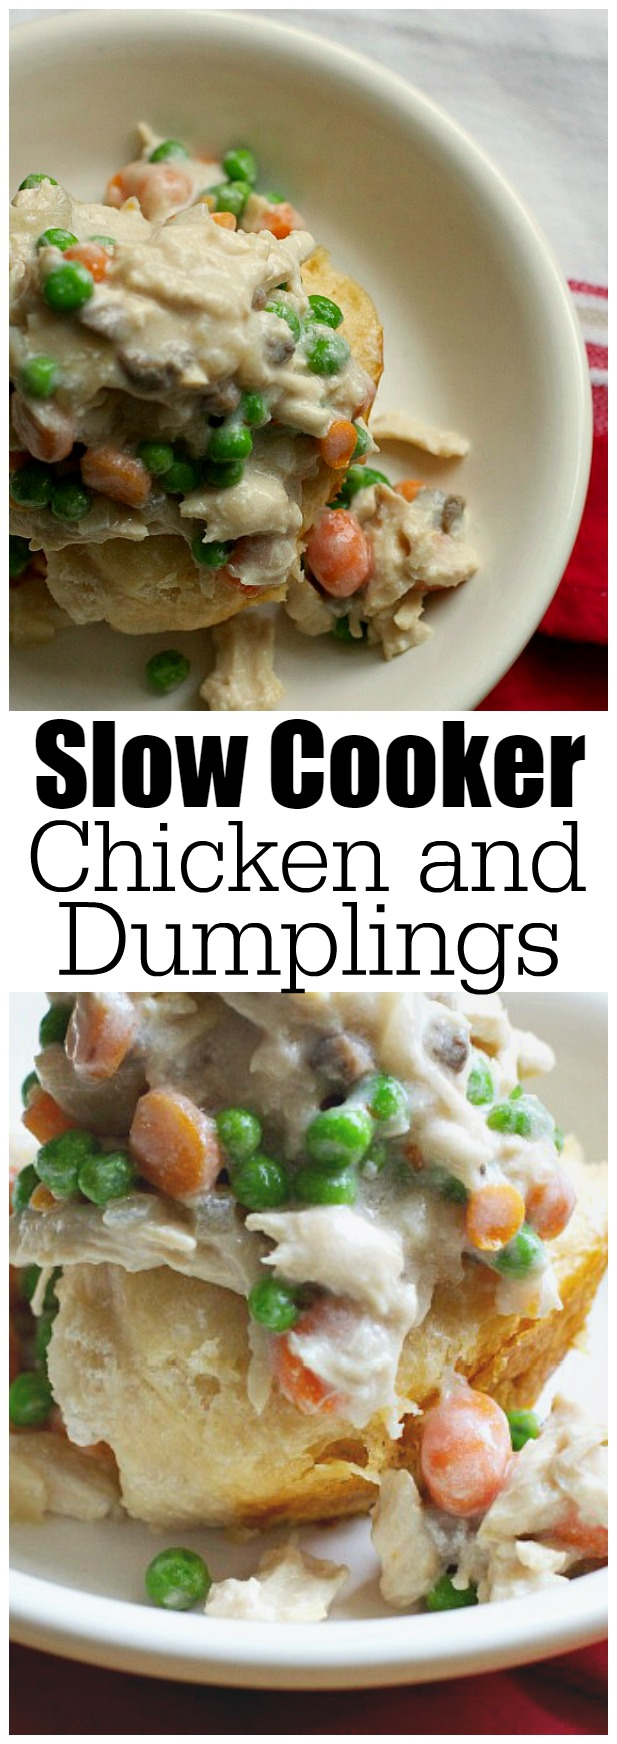 Delicious slow cooker chicken and dumplings. Only a few minutes to prepare - the perfect busy weeknight meal idea!